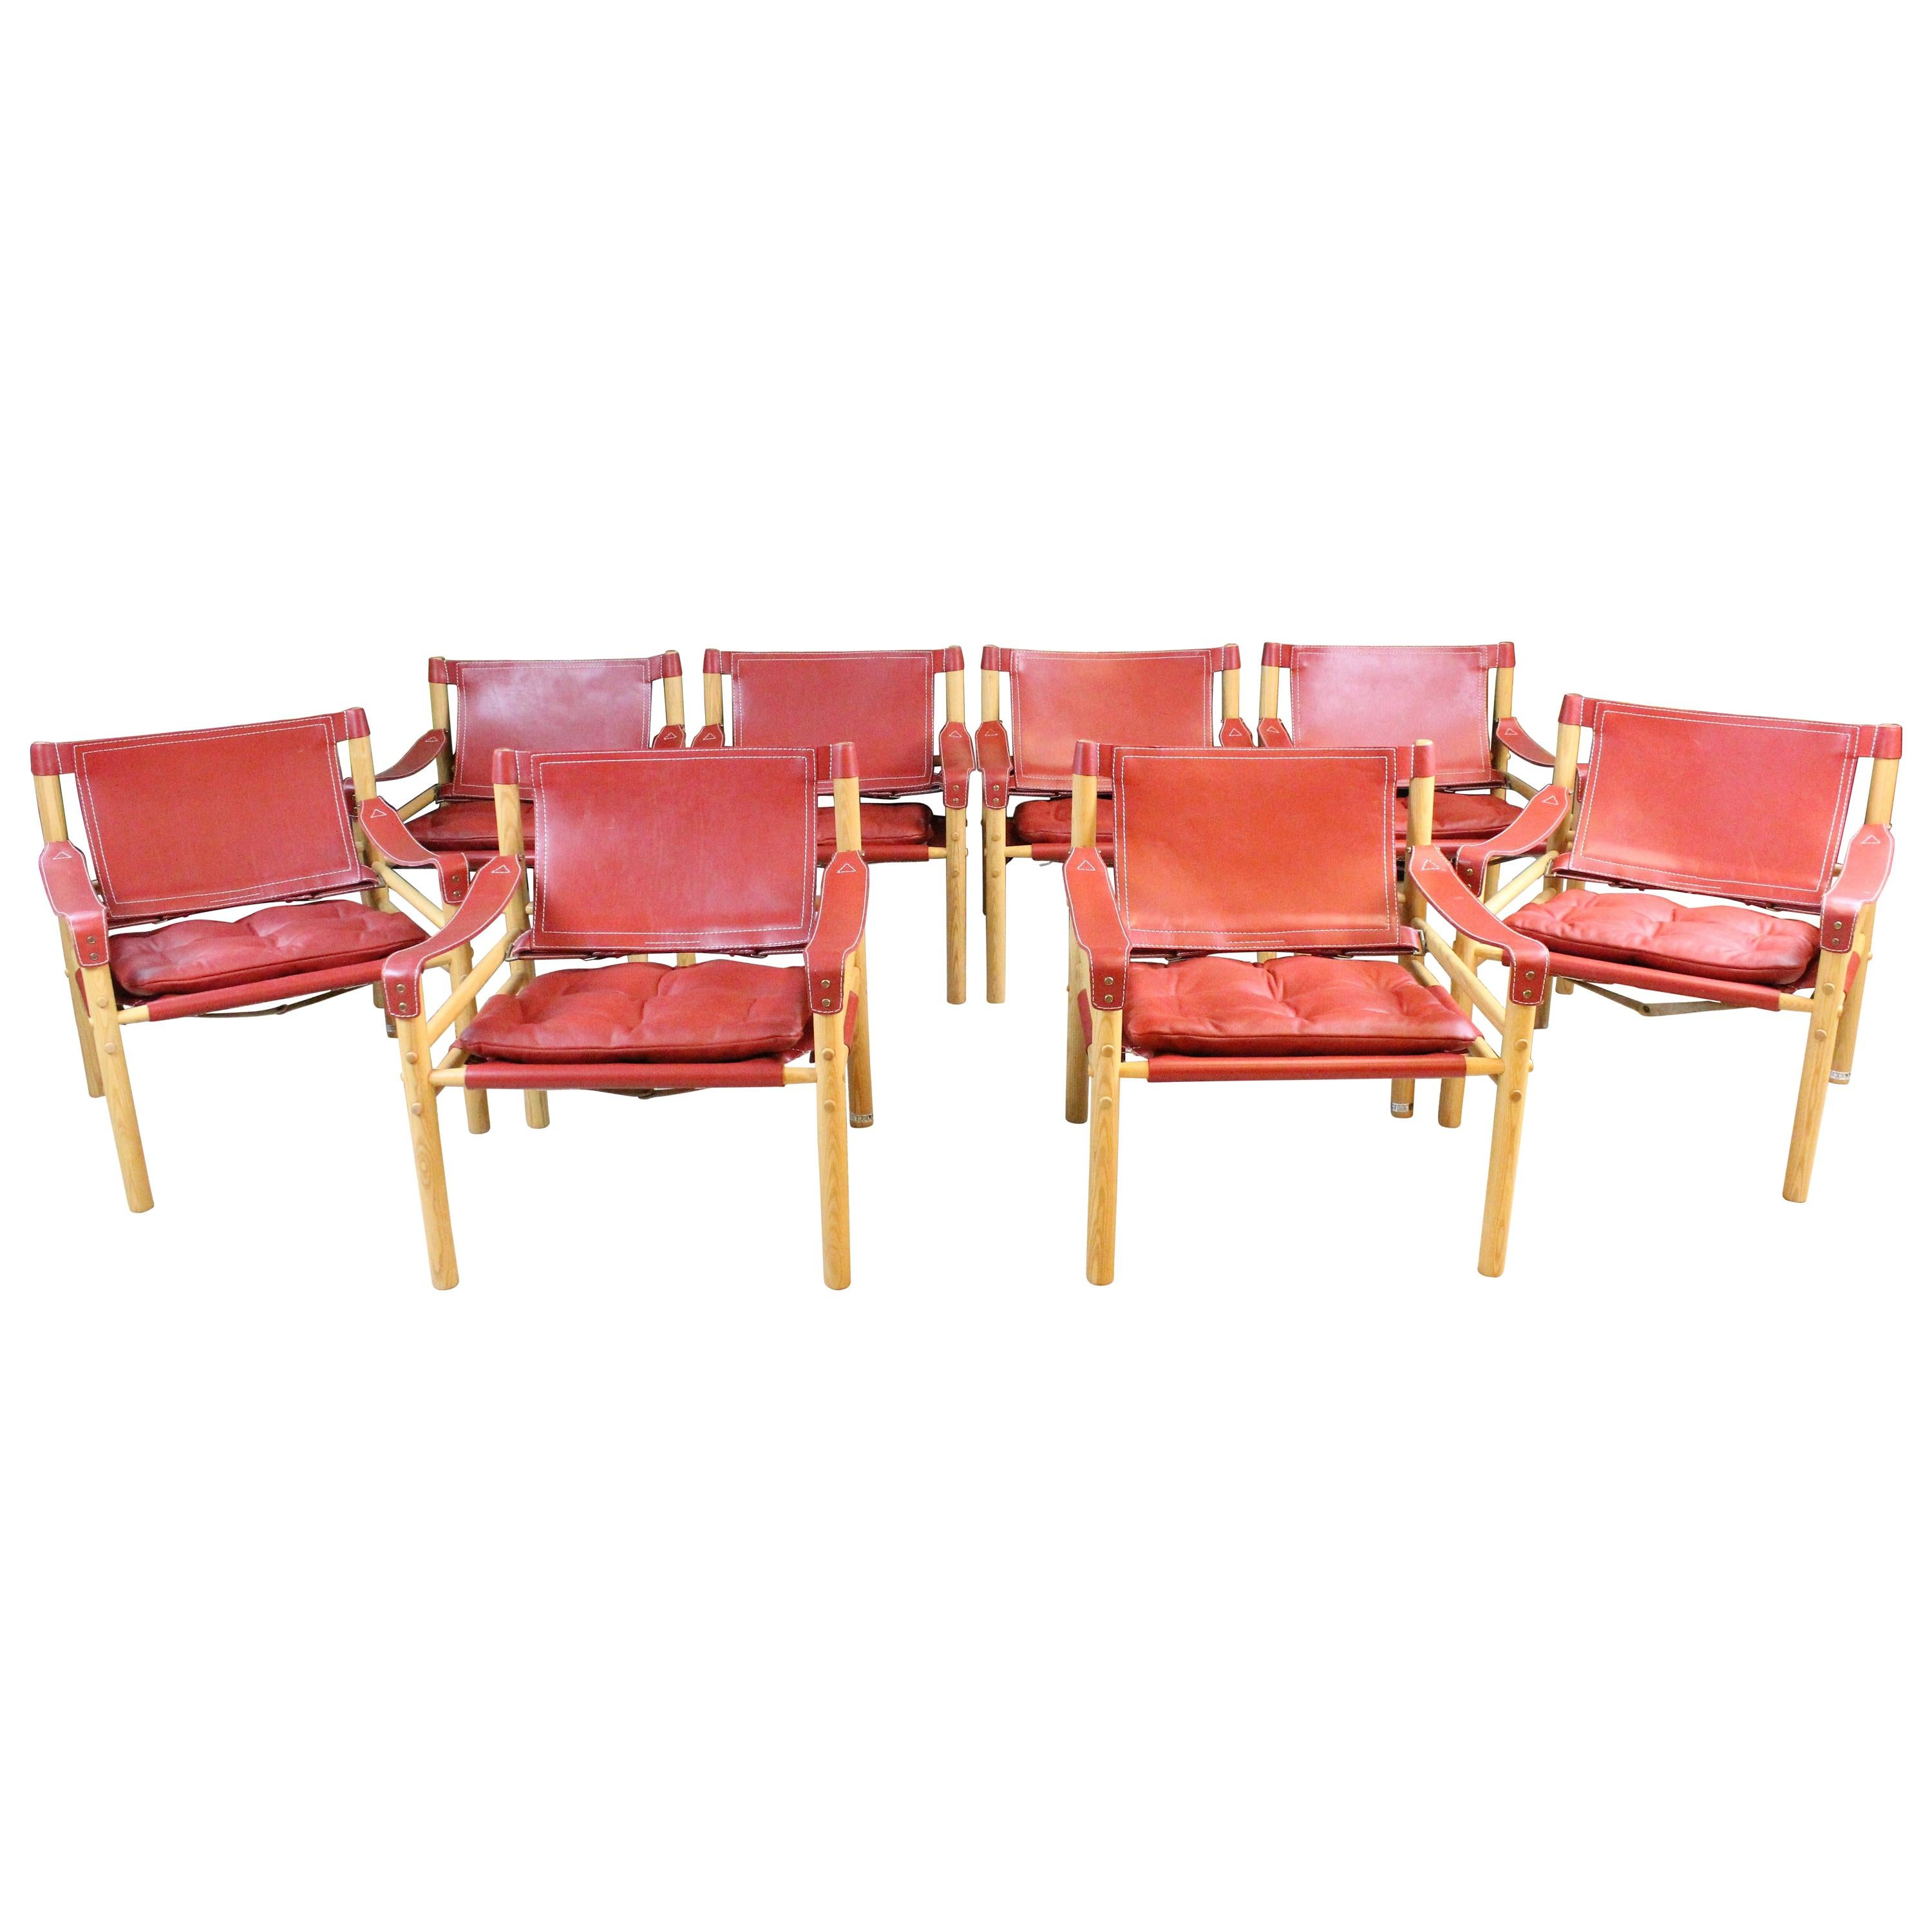 Arne Norell Sirocco Safari Chairs by Norells in Sweden